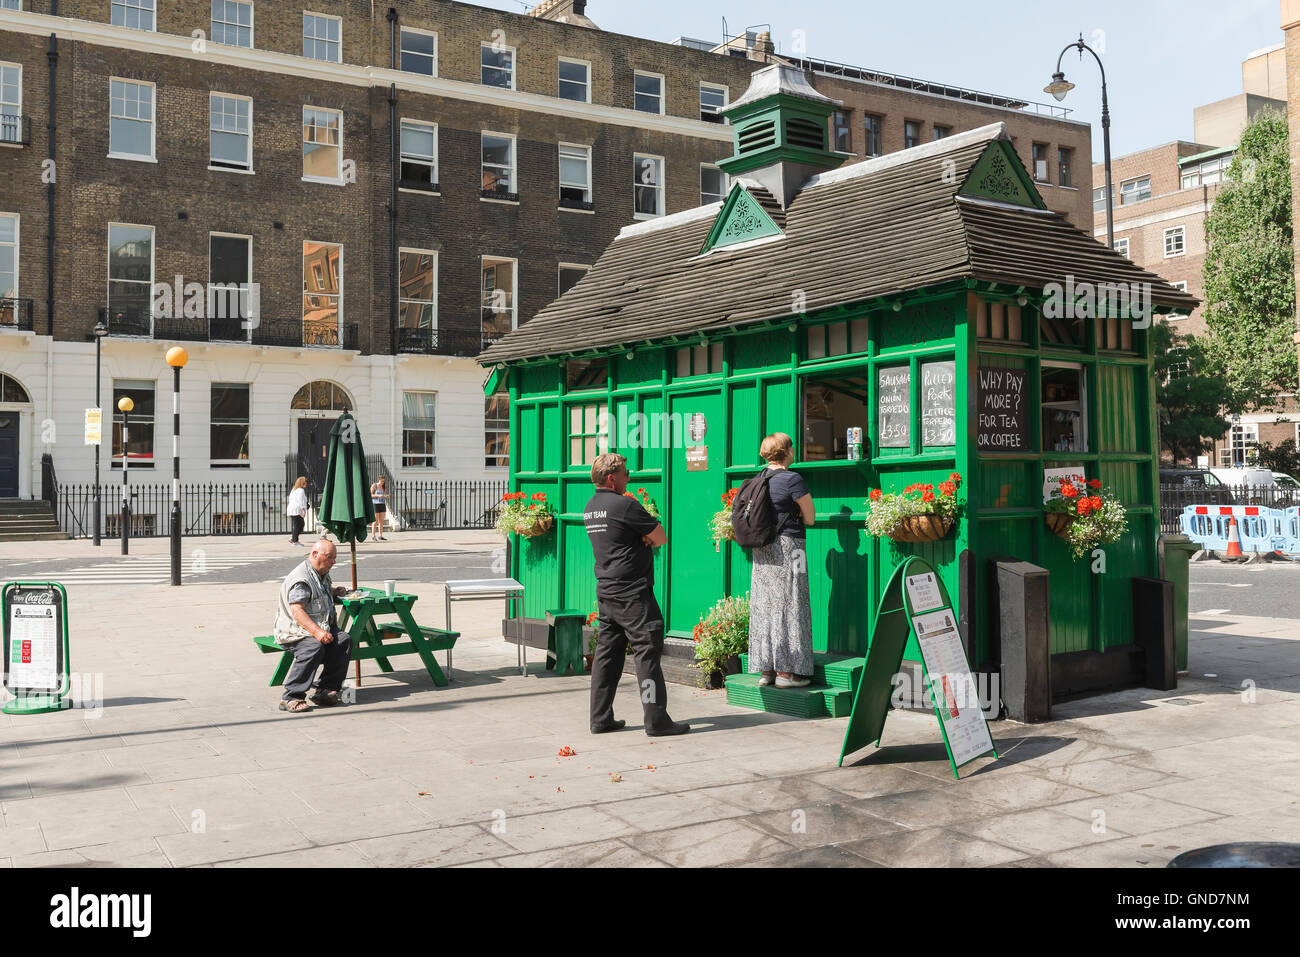 London street food, people buy cooked food from a converted cabmen's shelter in Russell Square, Bloomsbury, - Stock Image